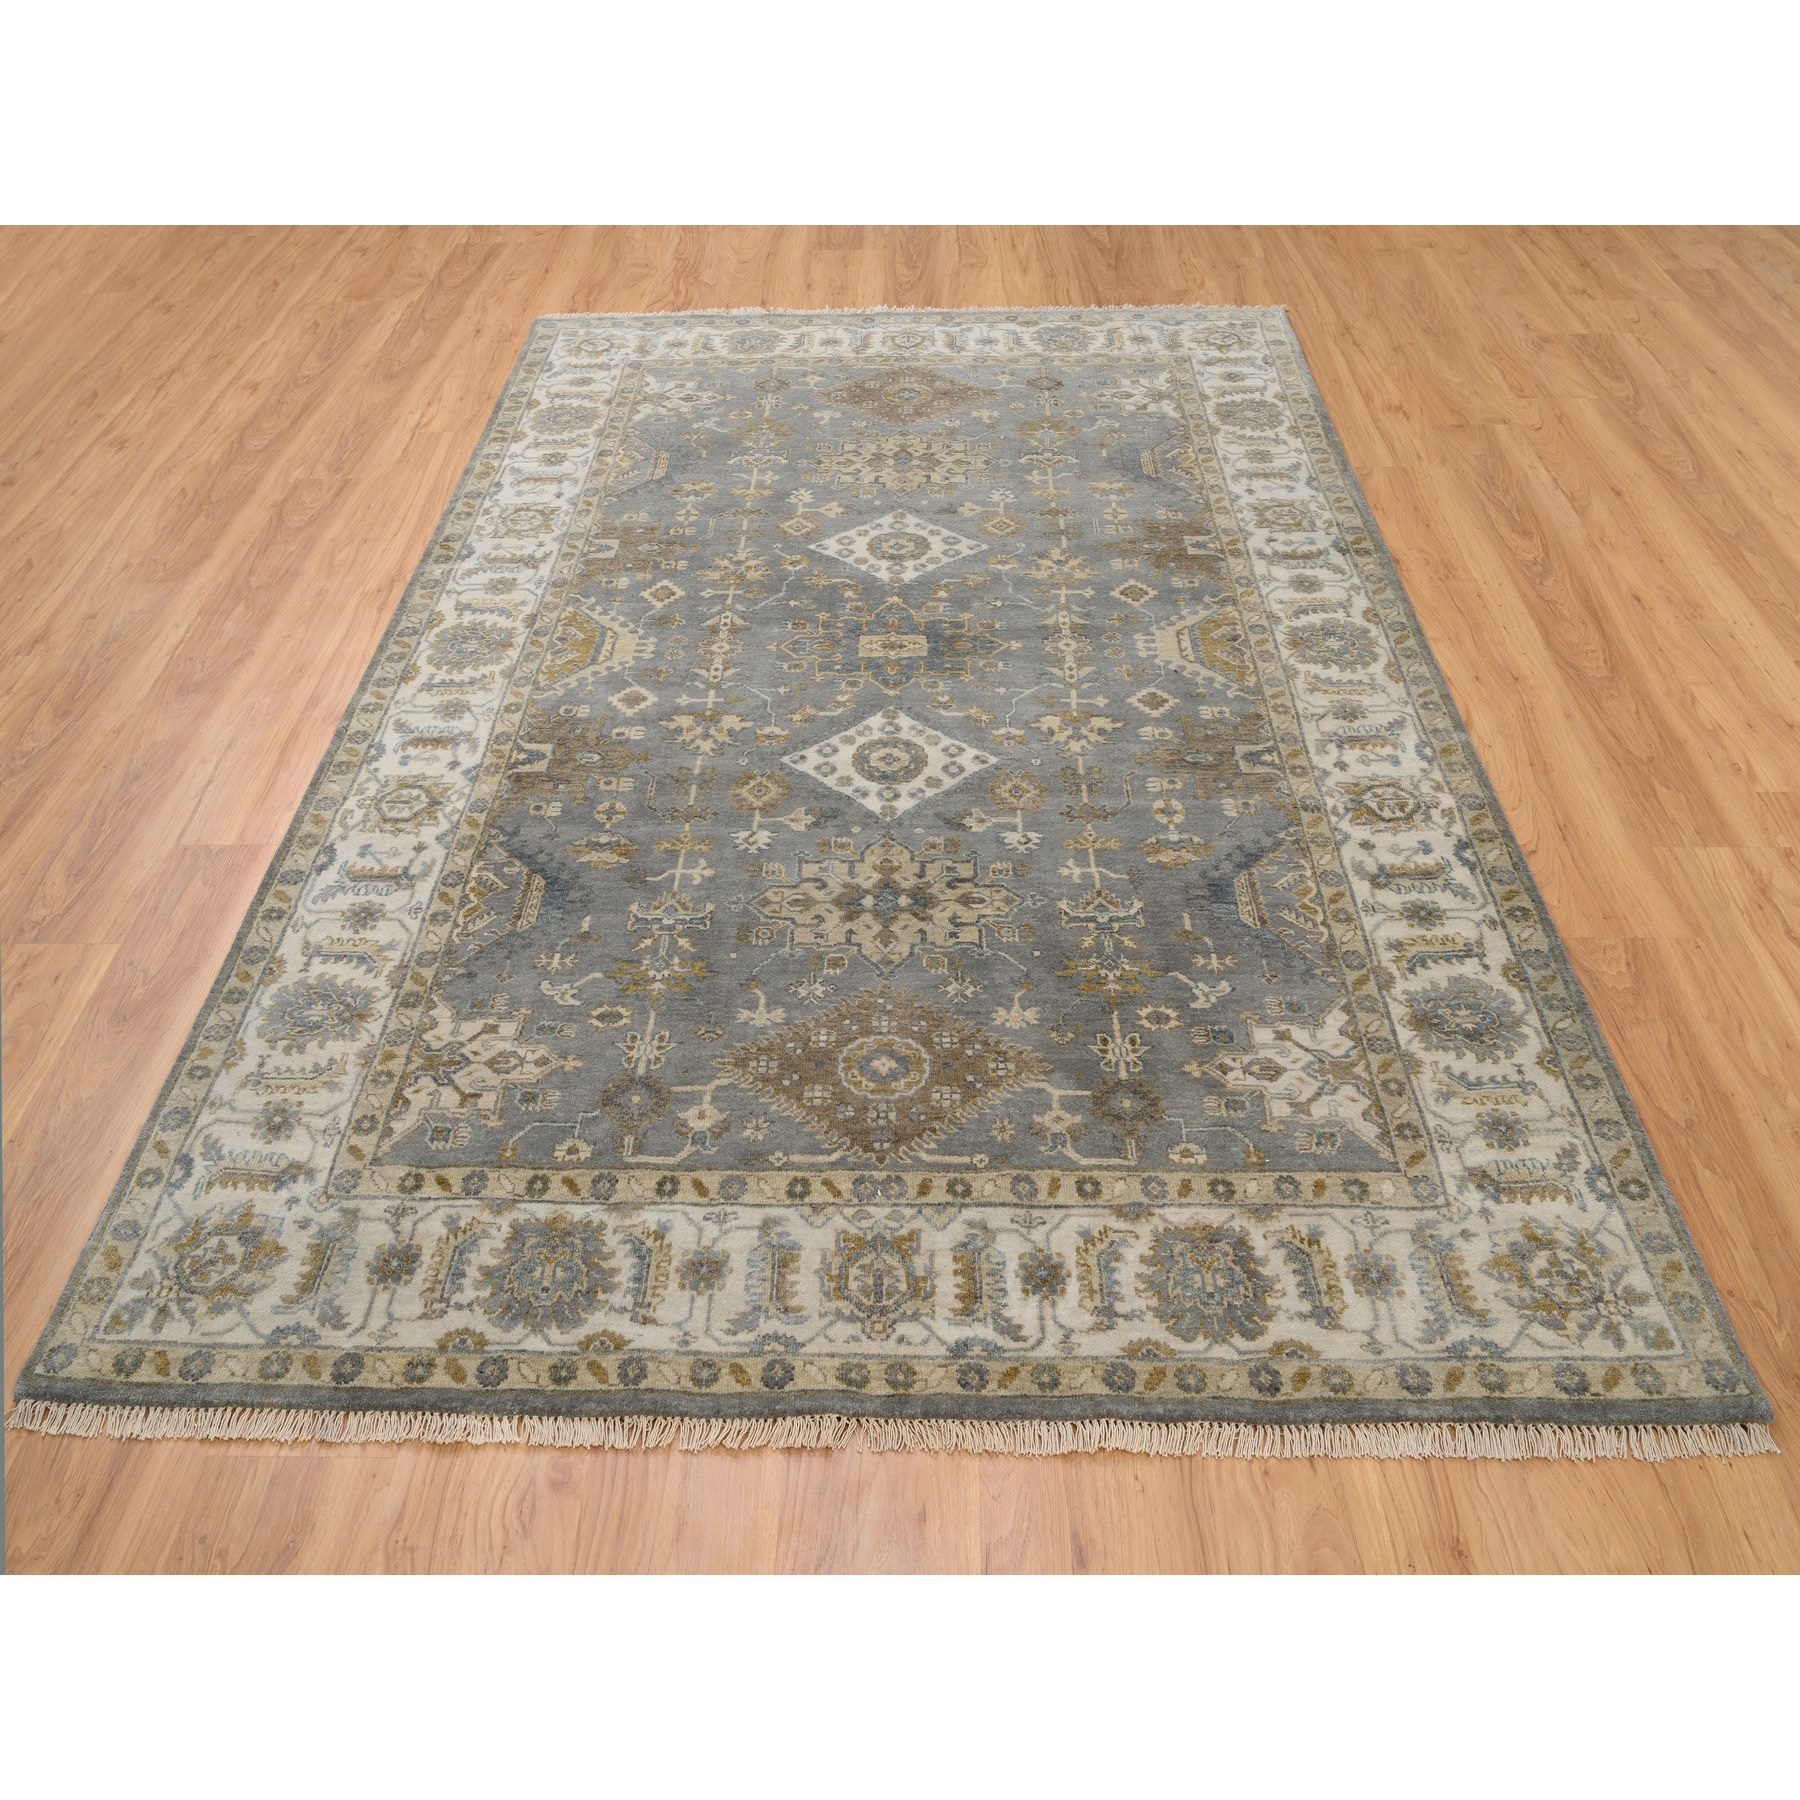 6'x9' Pure Wool Gray Karajeh Design Hand Knotted Oriental Rug